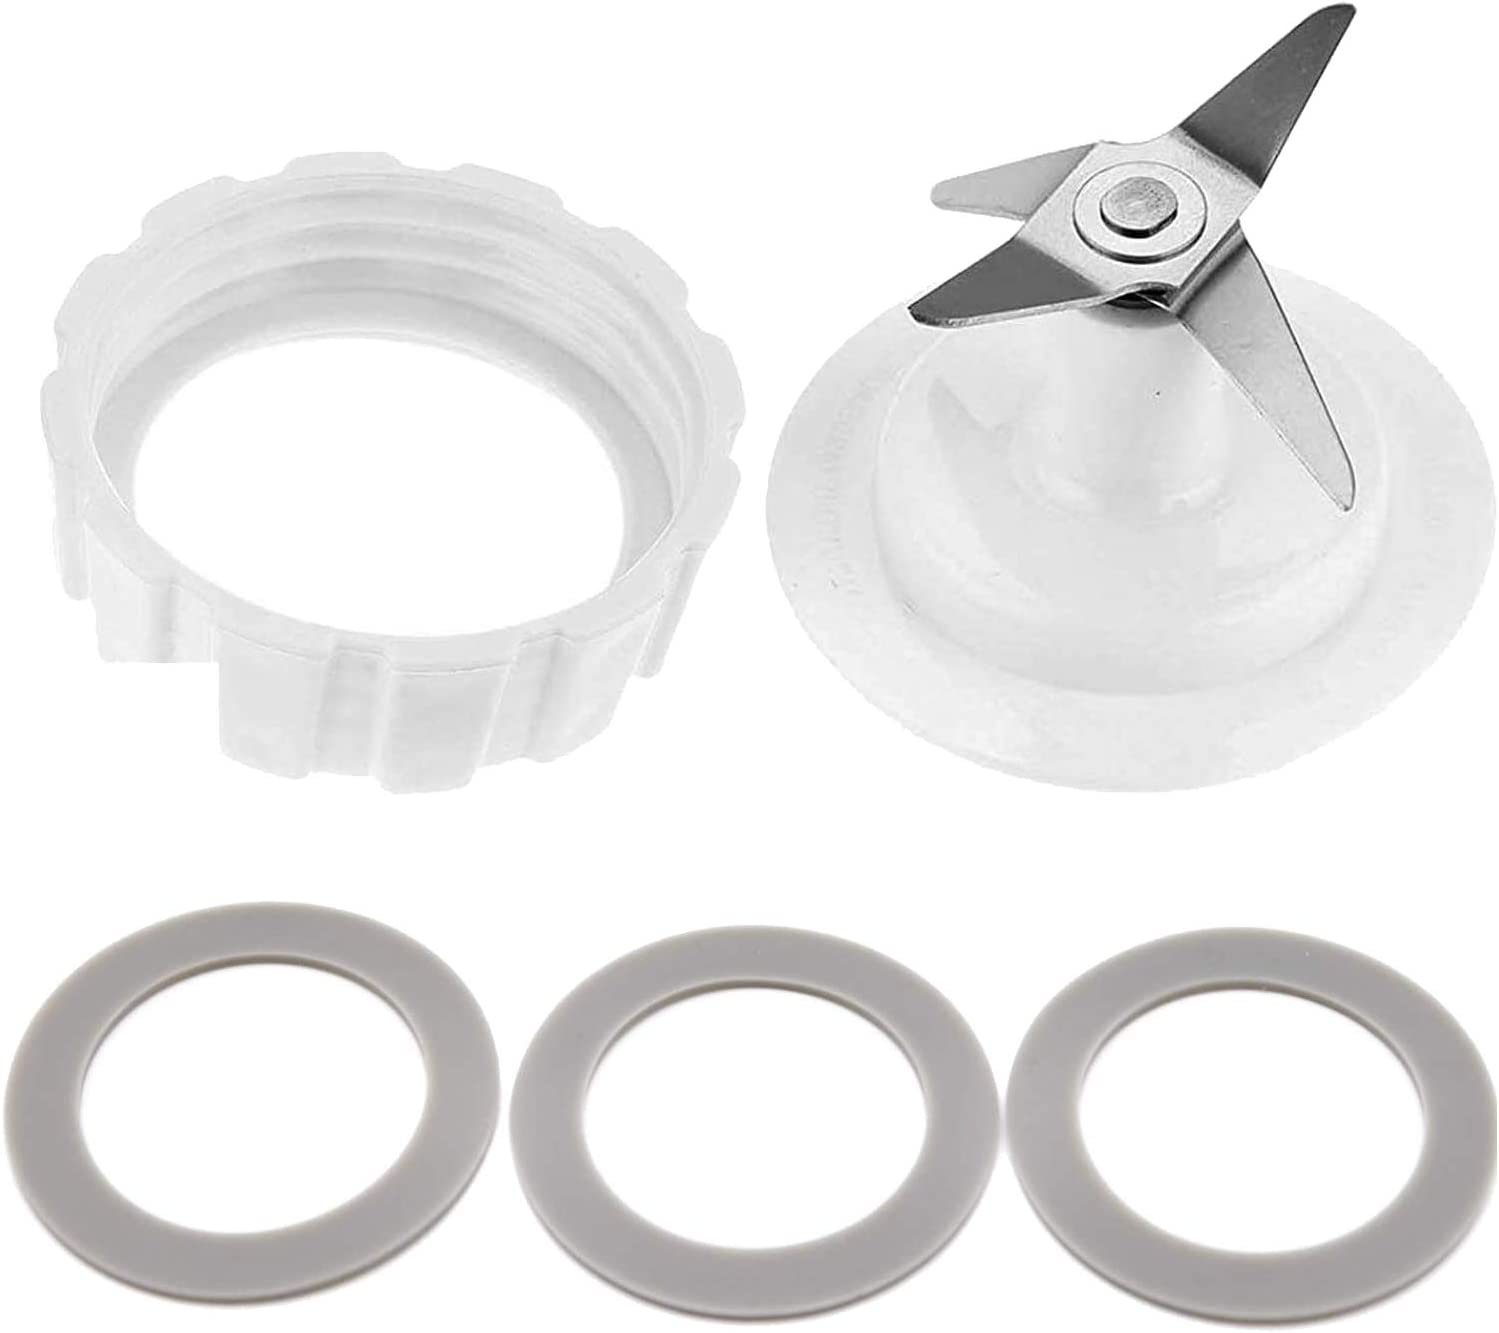 White Replacement Blade Gasket Blender Base Bottom Cap and 3 Rubber O Ring Sealing Gaskets Blade Fit for Hamilton Beach Blender Replacement Mixer Parts with Screw Cap and Rubber Gasket, Screw Cap